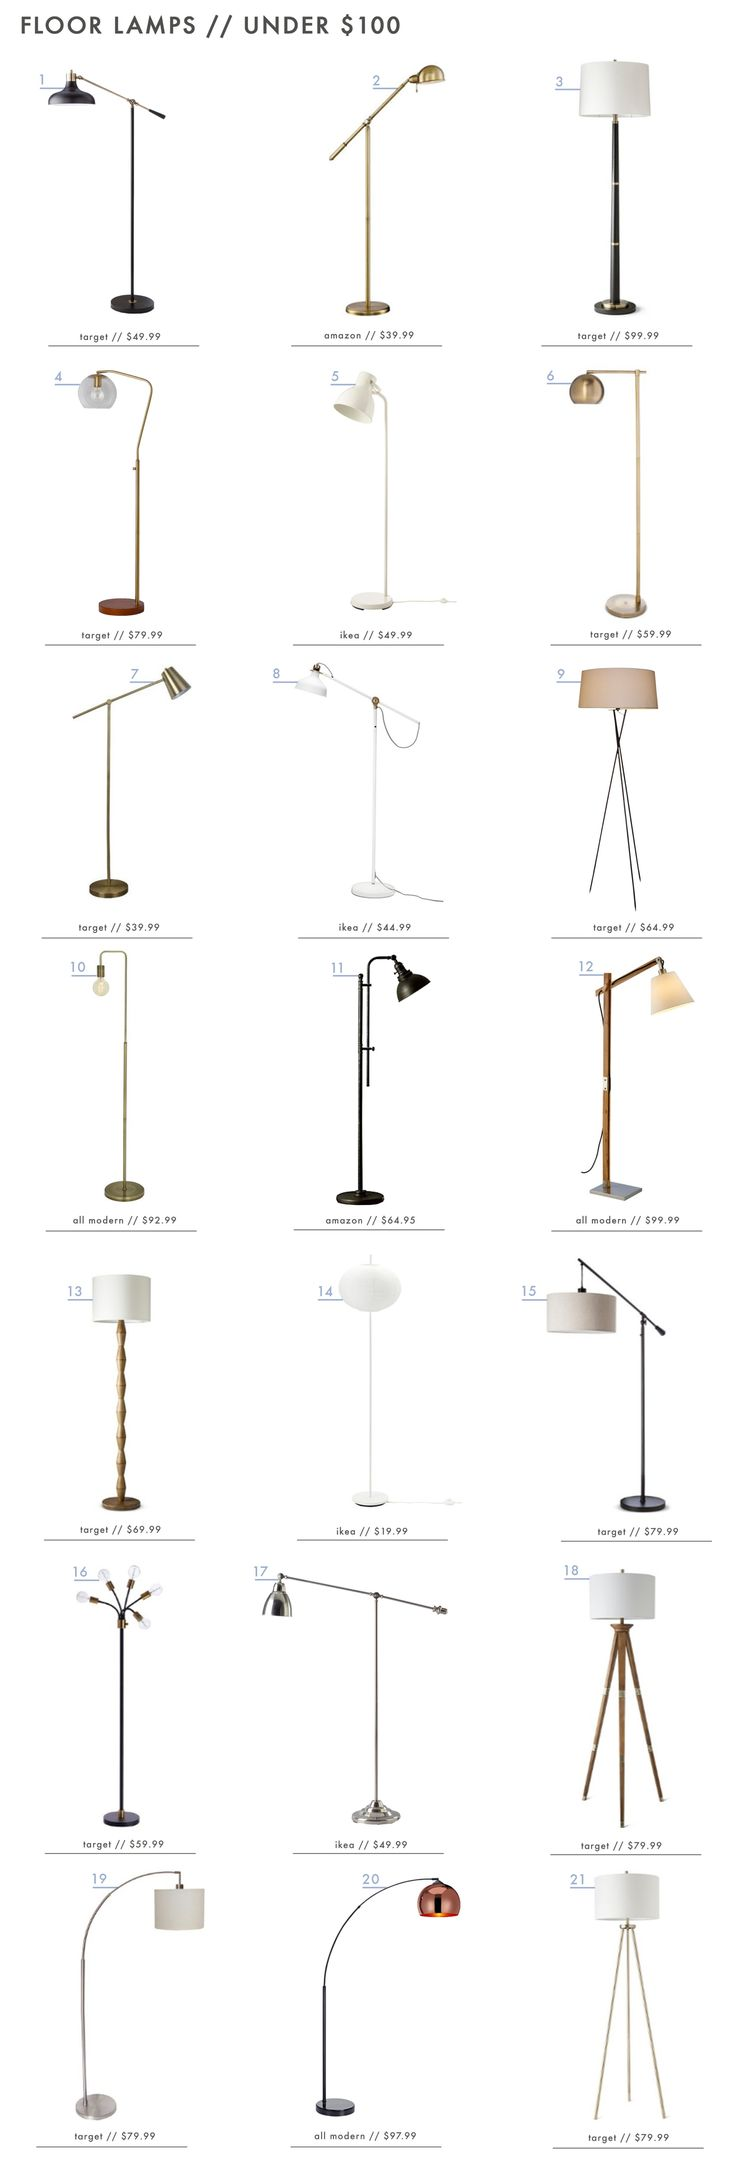 Best 25 floor lamps ideas on pinterest lamps floor lamp and 21 awesome floor lamps under 100 jameslax Image collections